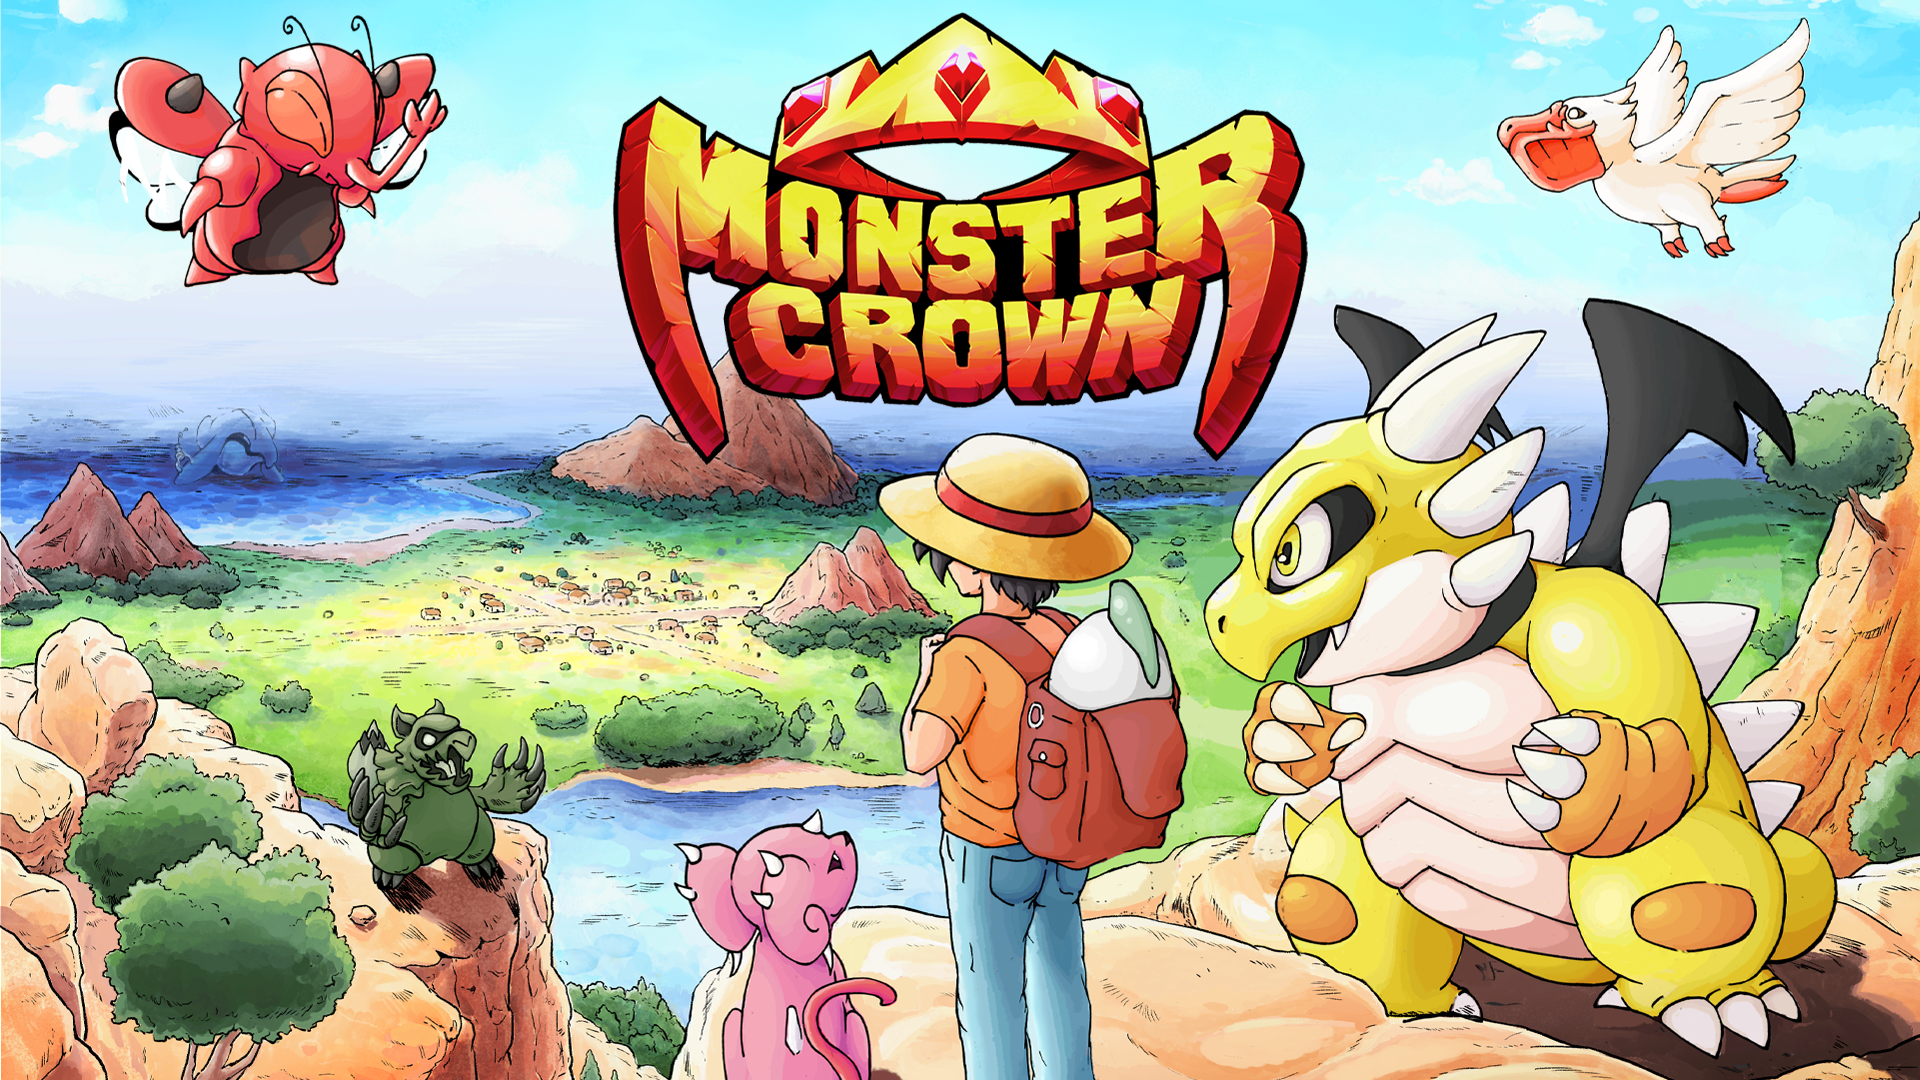 Review Monster Crown